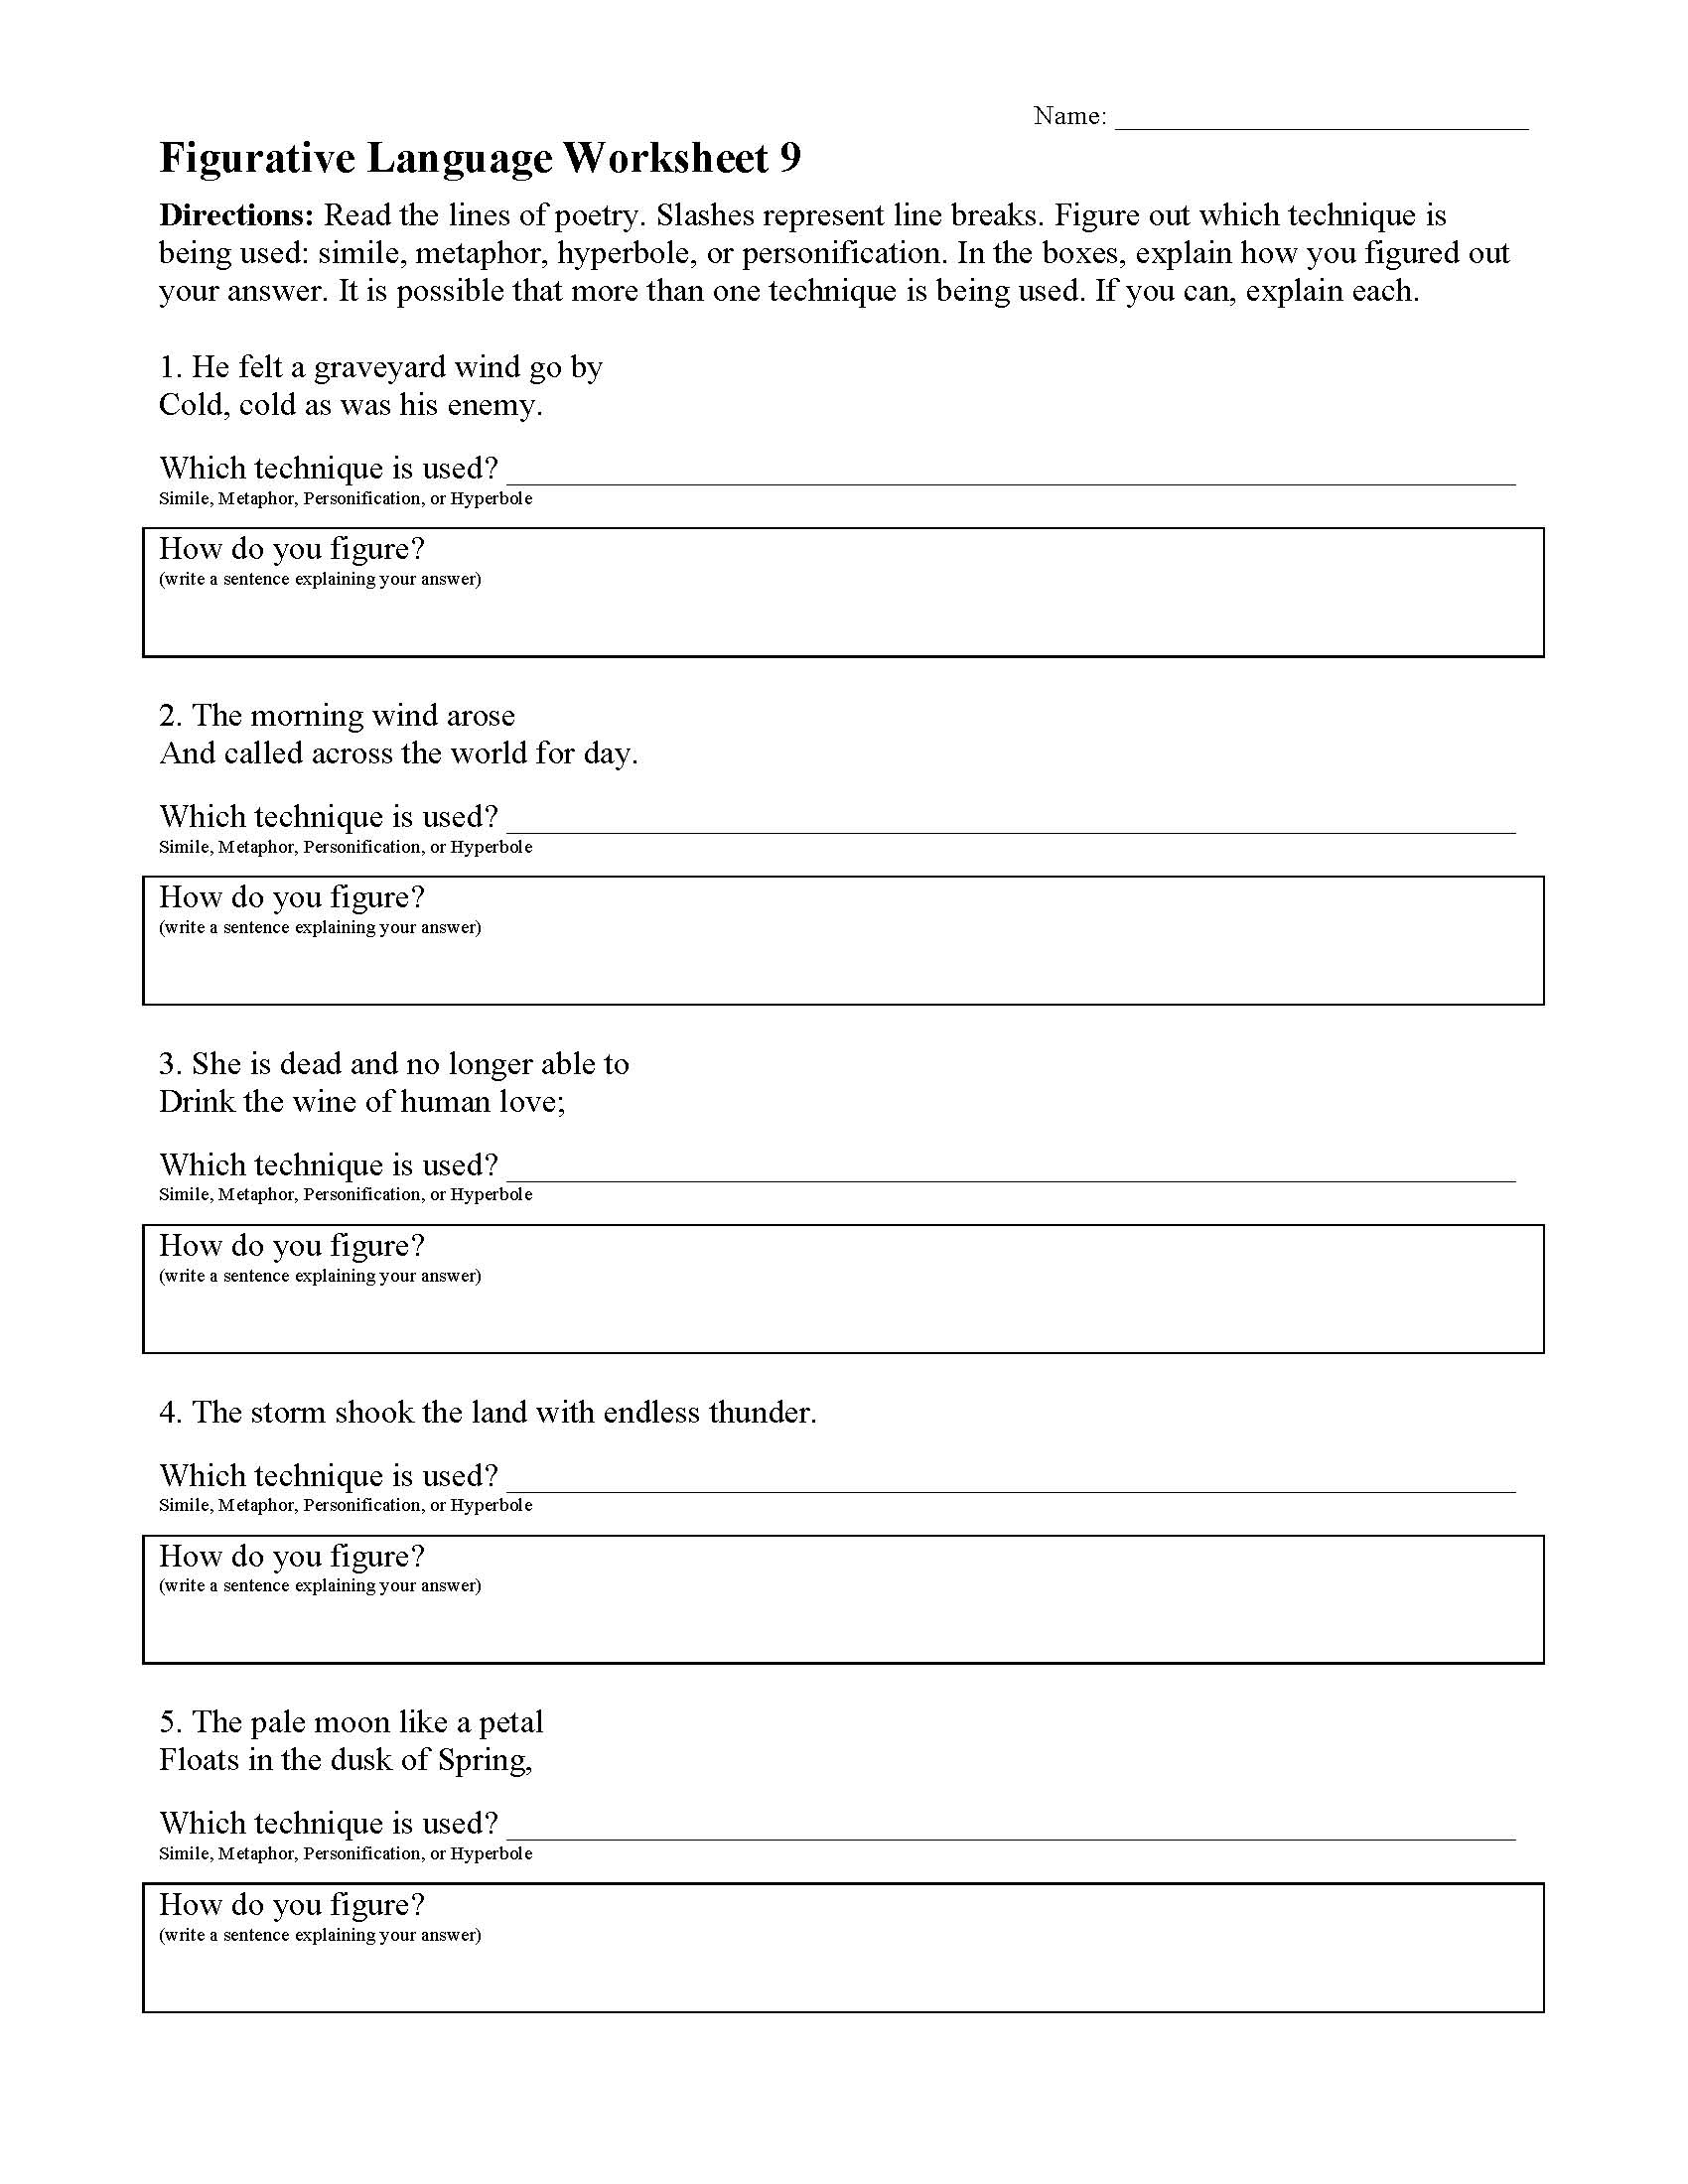 Figurative Language Worksheet 9 | Preview